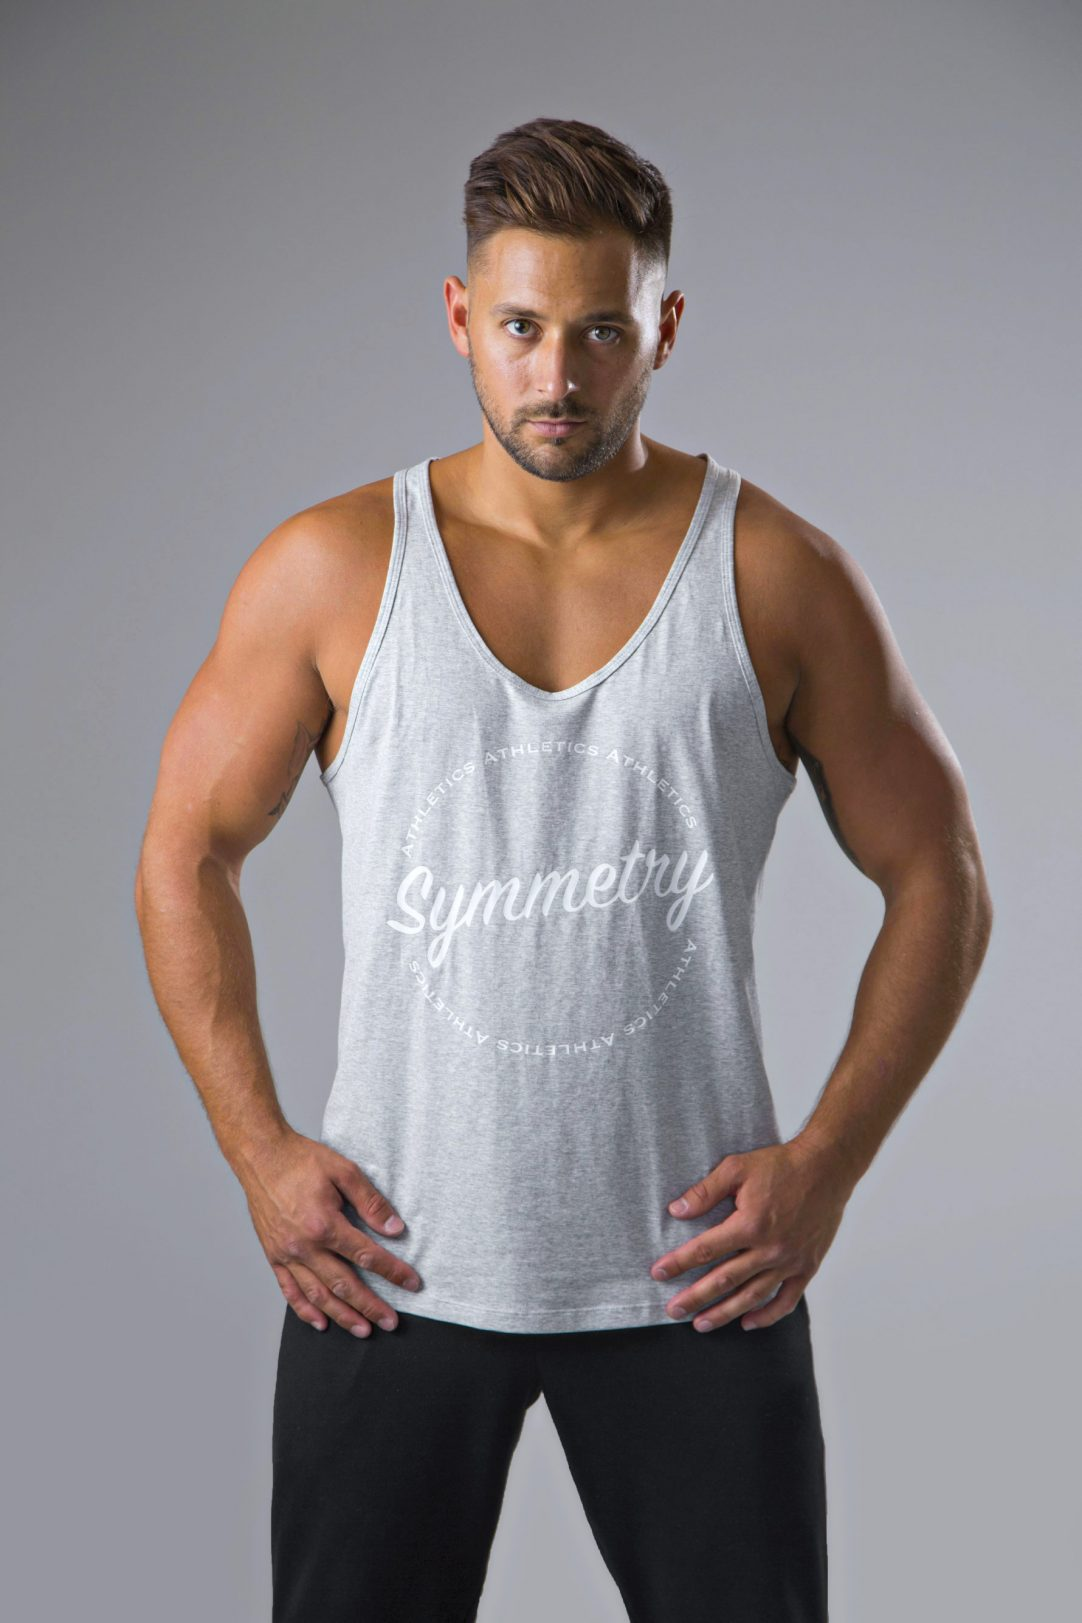 Mens stringer vest tops in heathered grey and white 8 | symmetry athletics